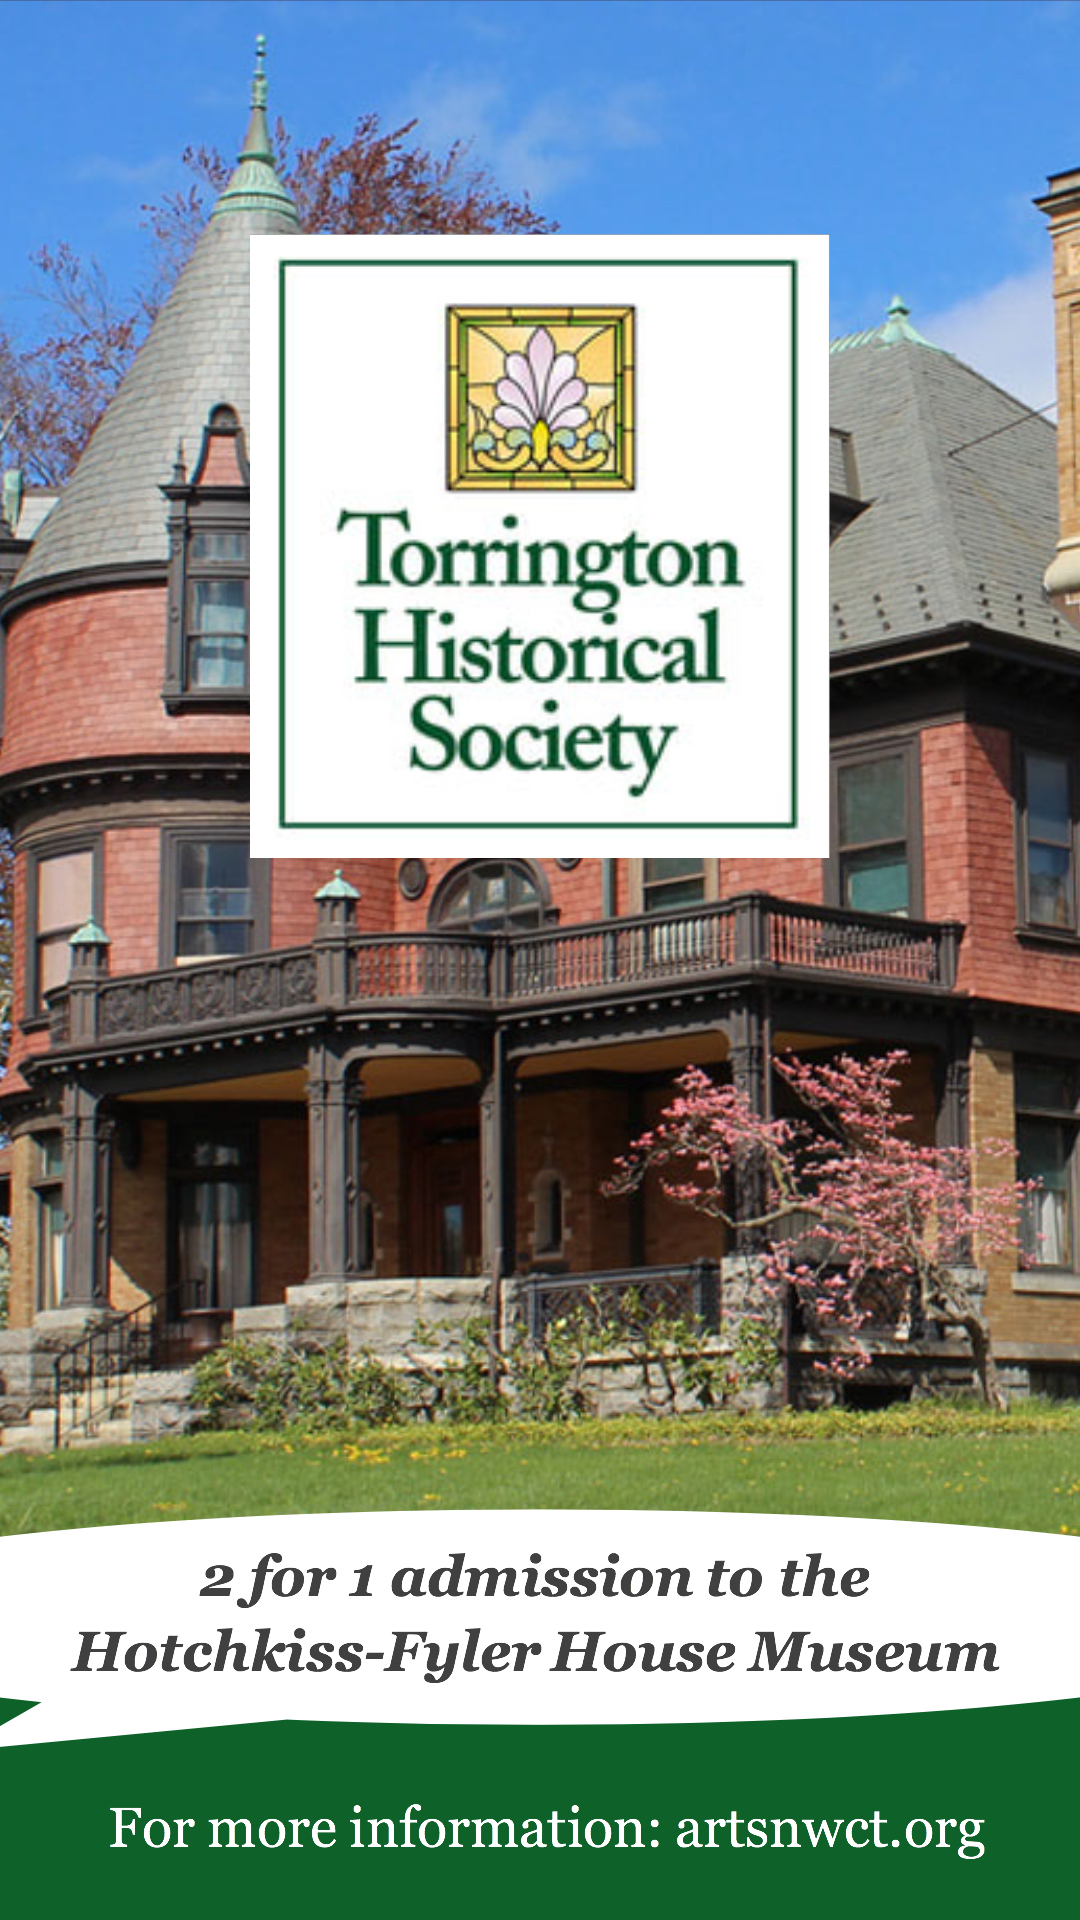 Torrington Historical Society